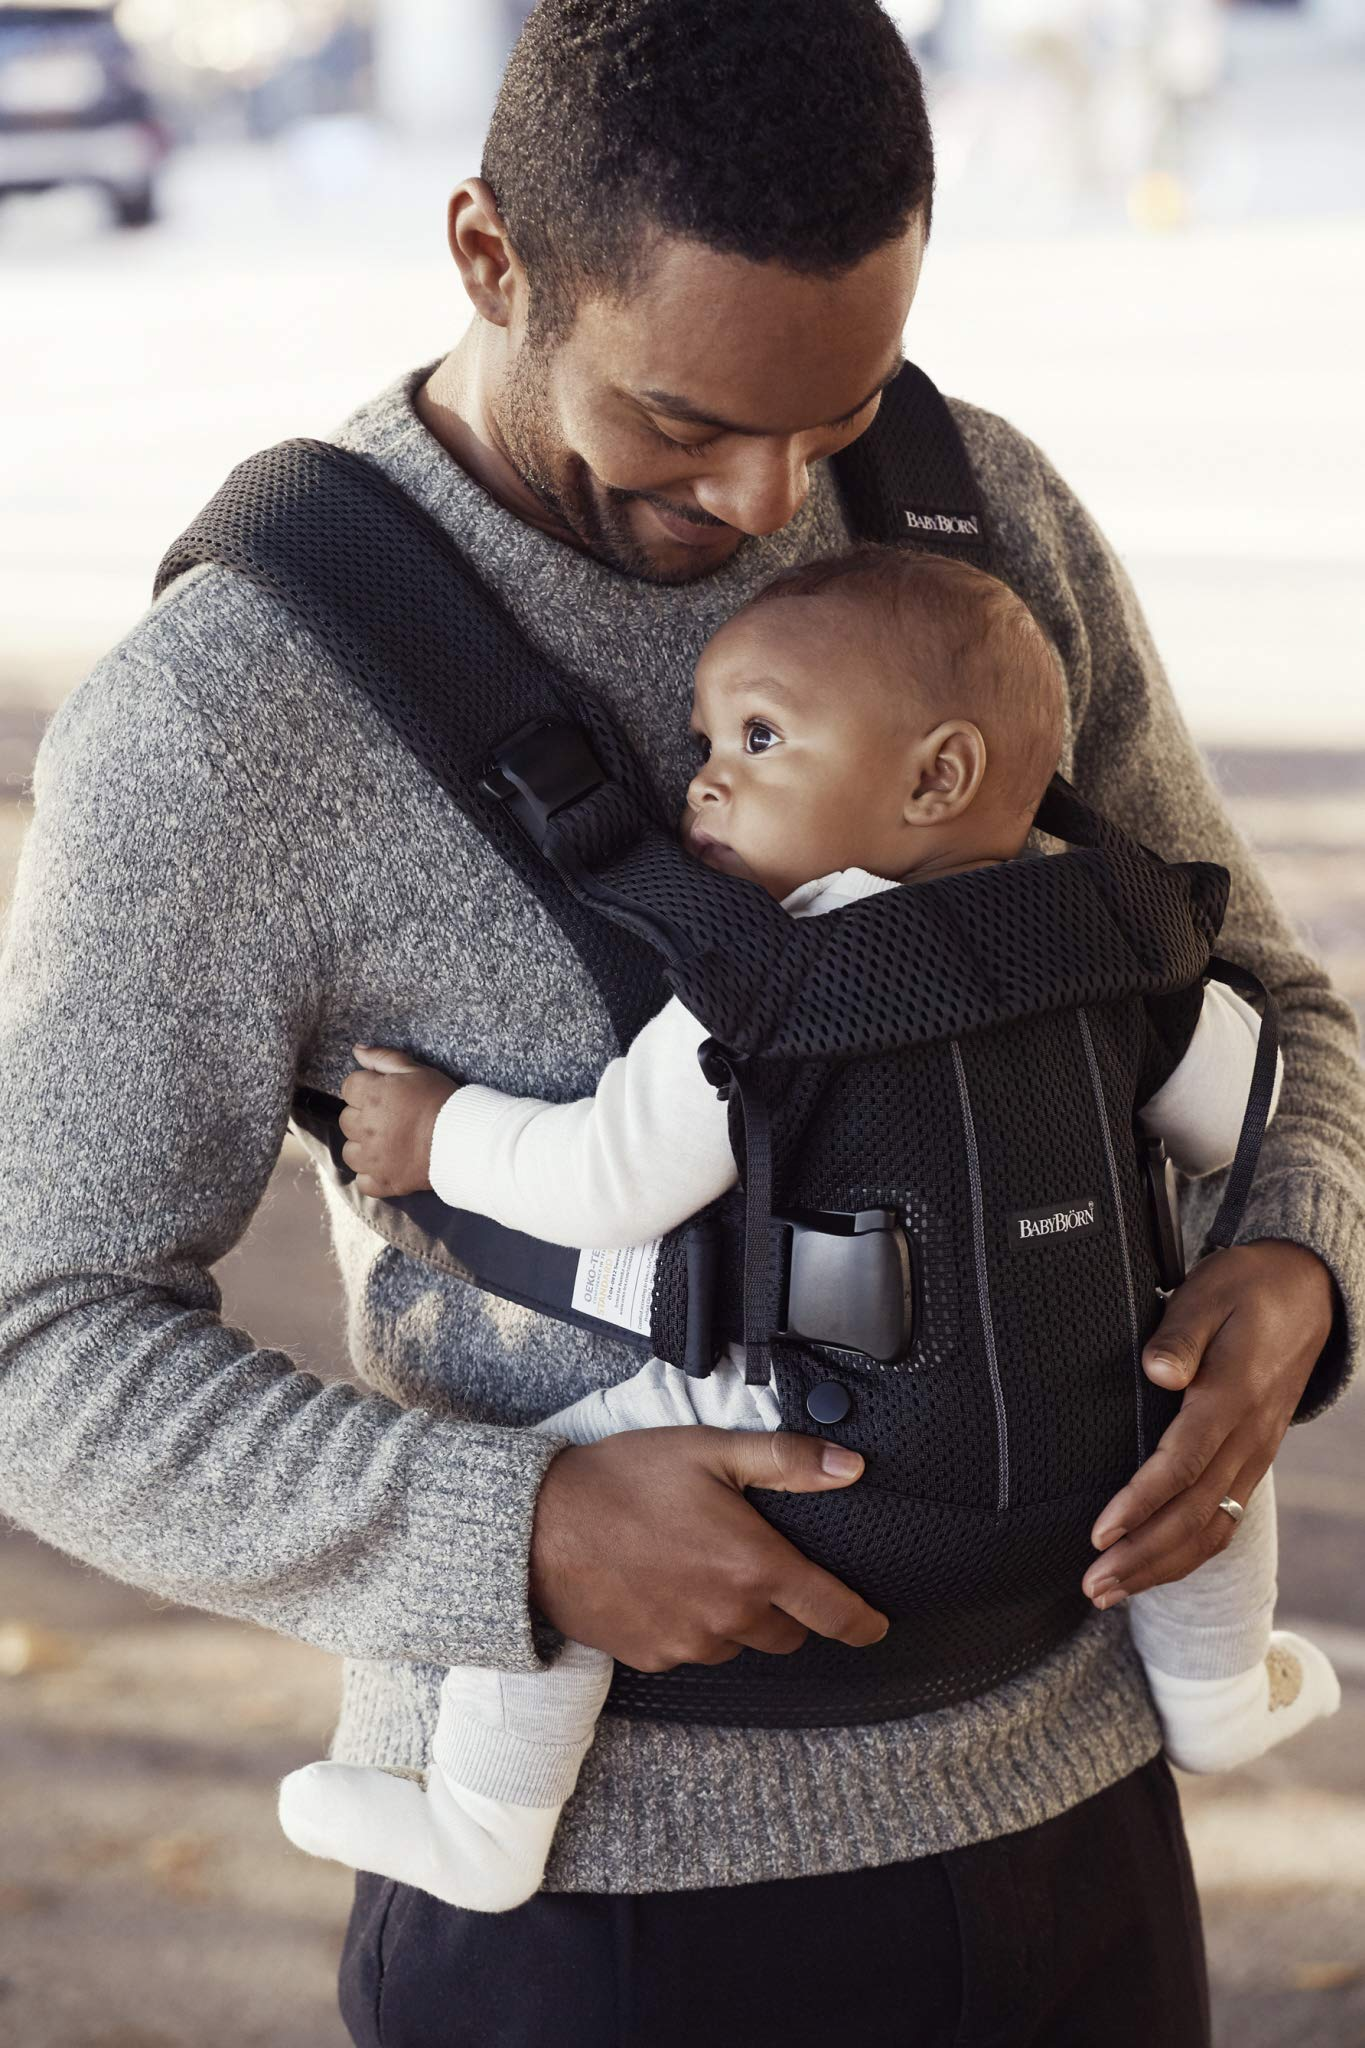 BABYBJÖRN Baby Carrier One Air, 3D Mesh, Black, 2018 Edition Baby Bjorn The latest version (2018) with soft and breathable mesh that dries quickly Ergonomic baby carrier with excellent support 4 carrying positions: facing in (two height positions), facing out or on your back 9